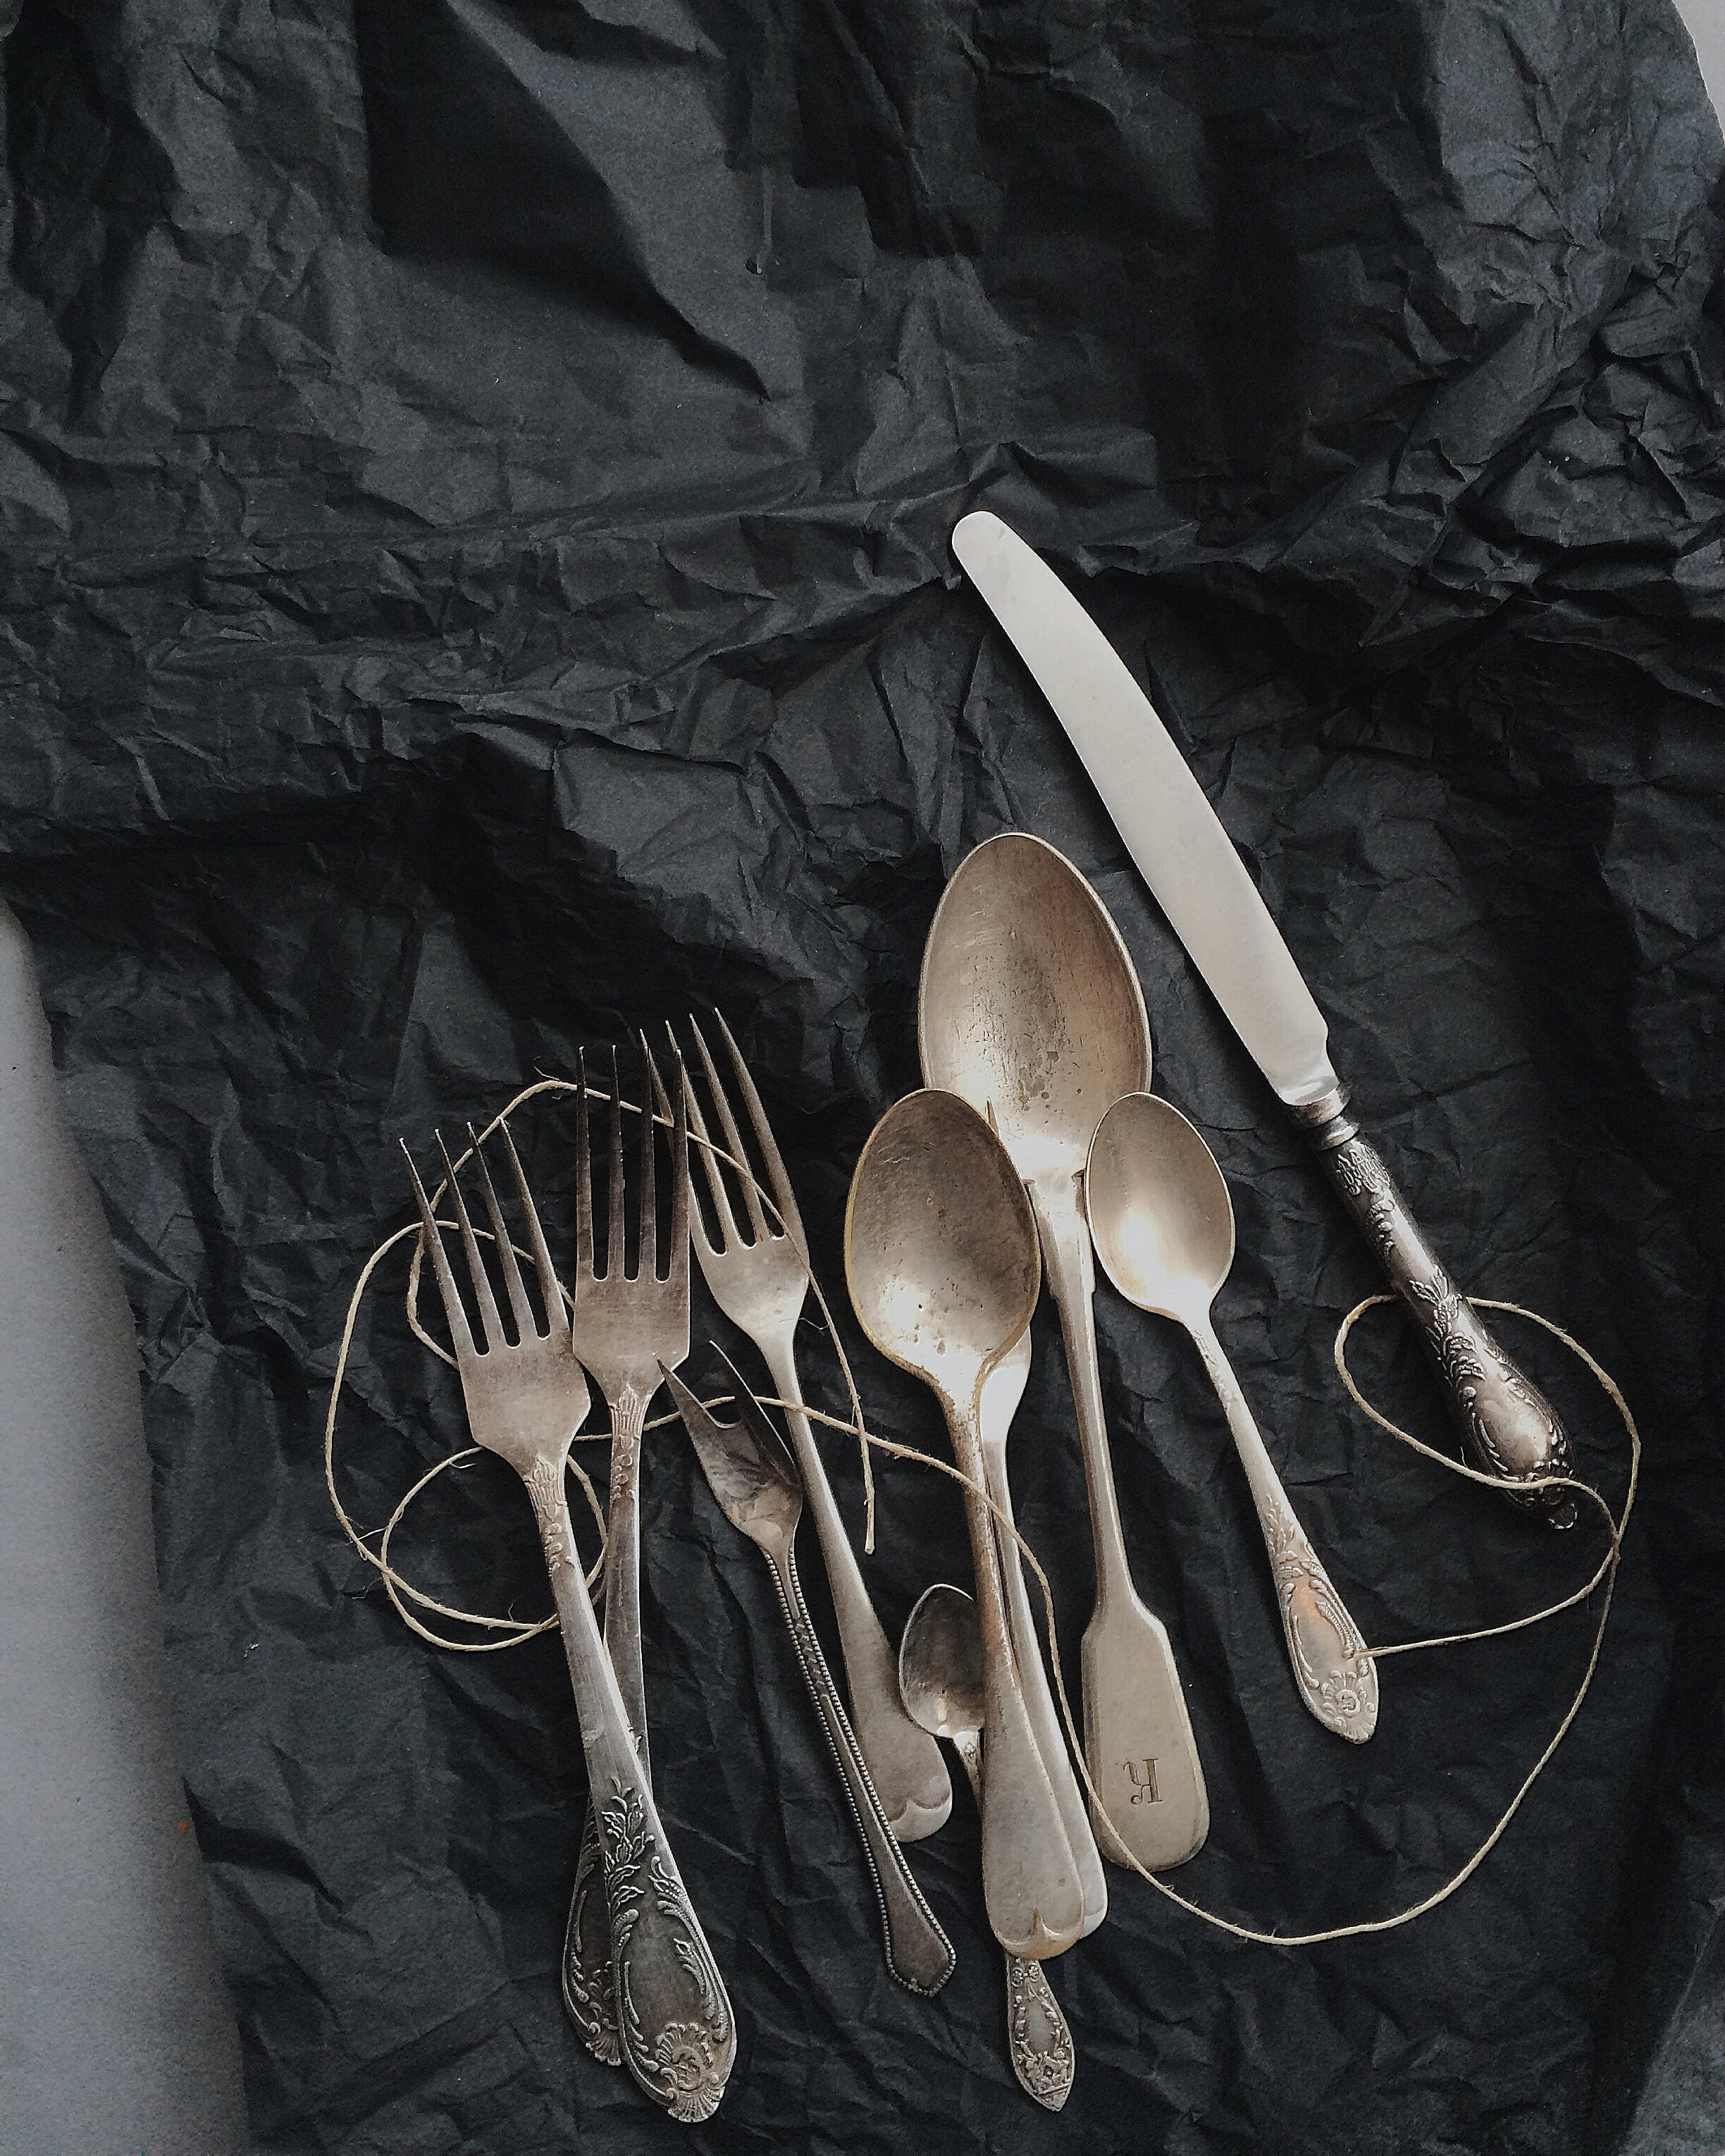 Photo of Stainless Steel Cutlery on Black Cloth